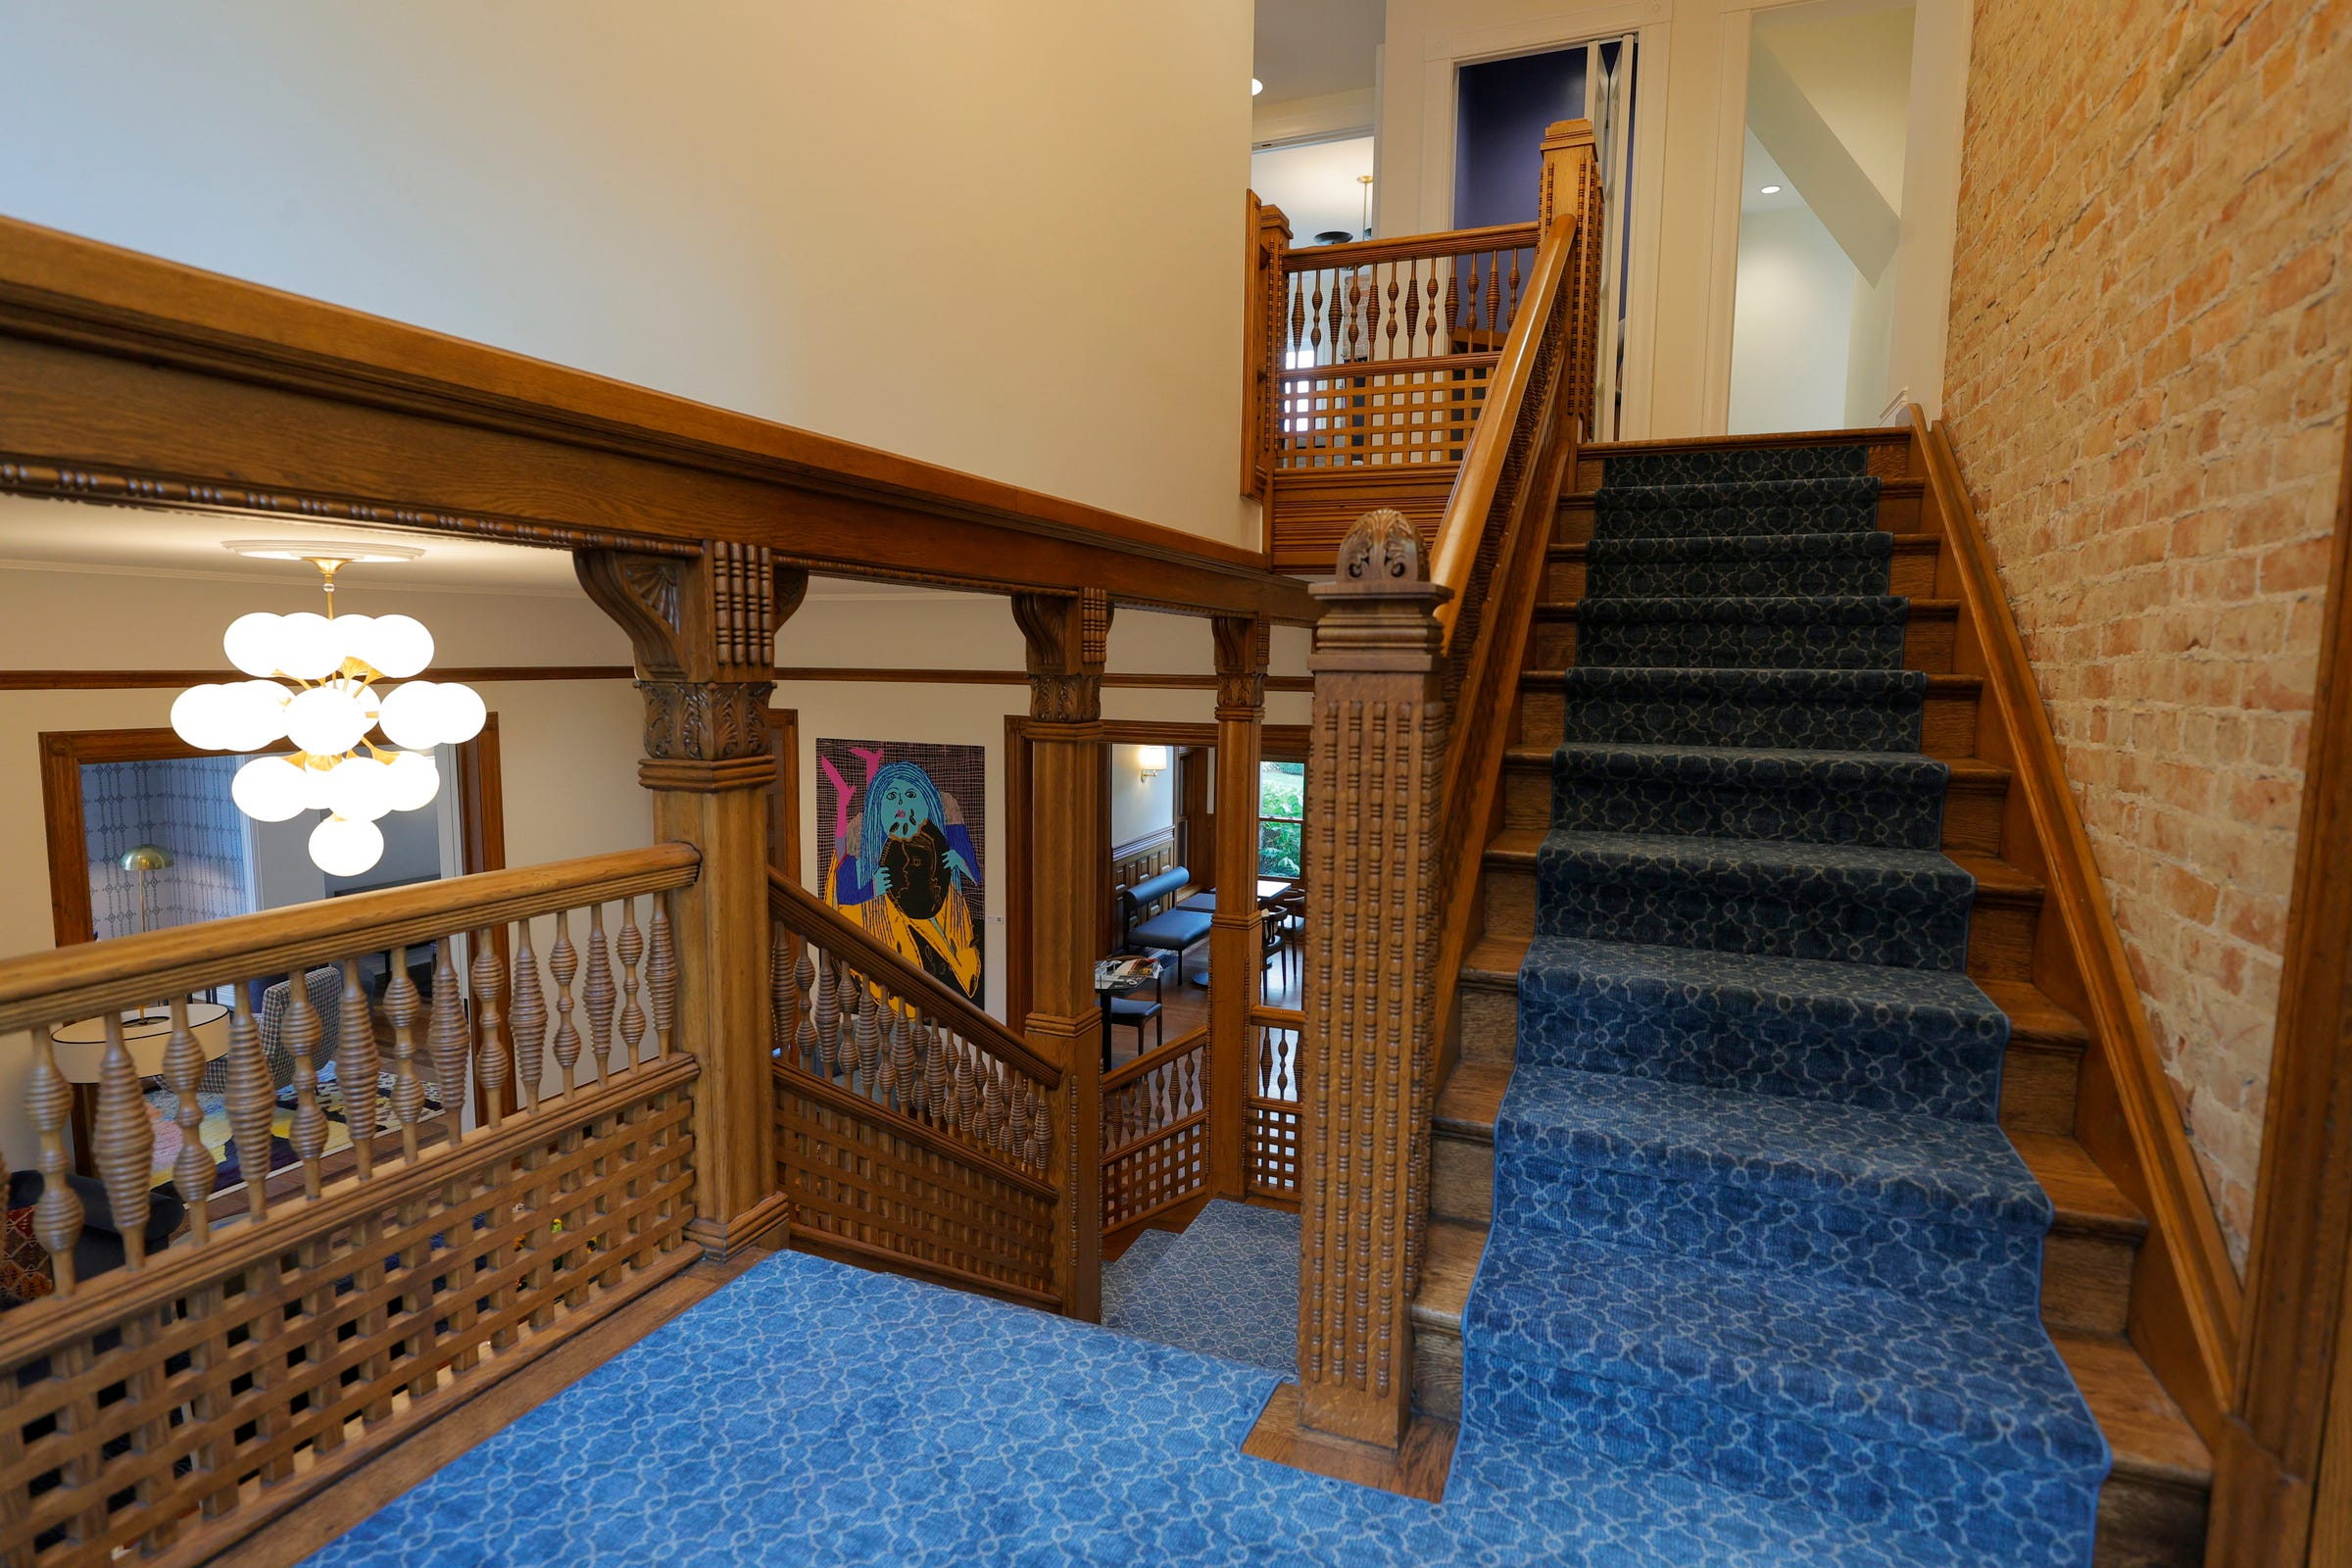 The BasBlue house on Ferry Street in Detroit on October 13, 2021, still holds the charm and elegance after the renovations. When BasBlue opens near the end of October it will be a membership organization for women to join and support other women across the metro Detroit with an area to work, meet, get mentorship help along with career advice and guidance.